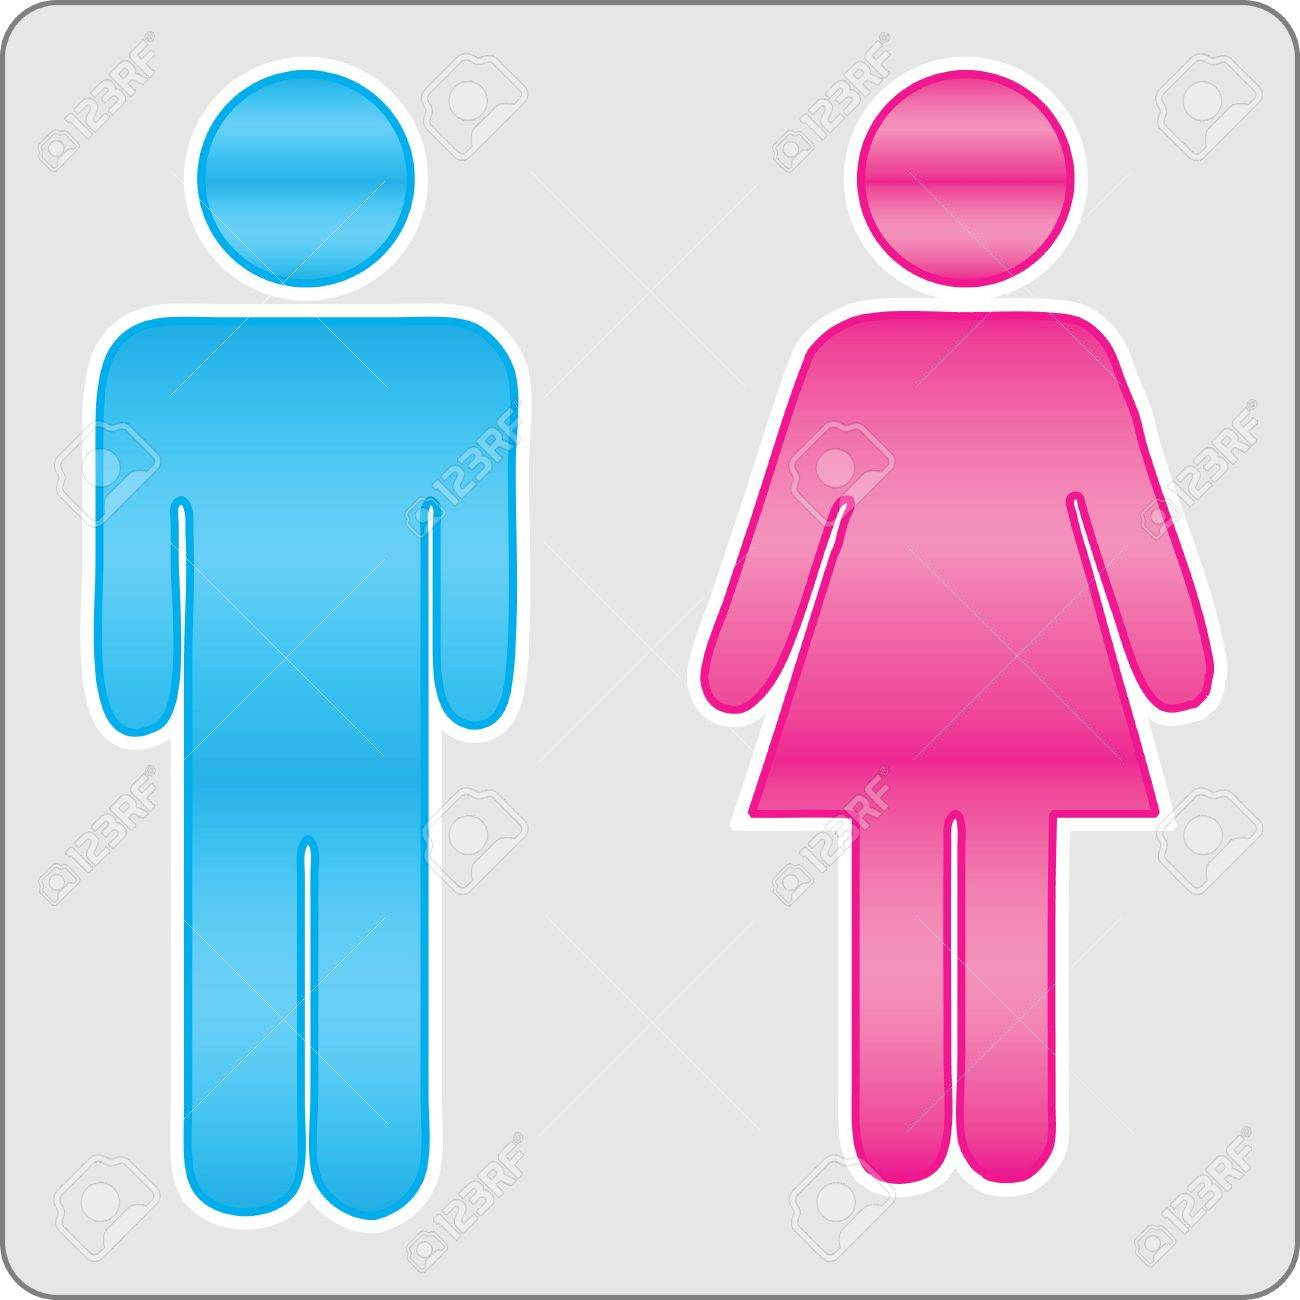 Bathroom Sign Male Vector female washroom logo | carpetcleaningvirginia